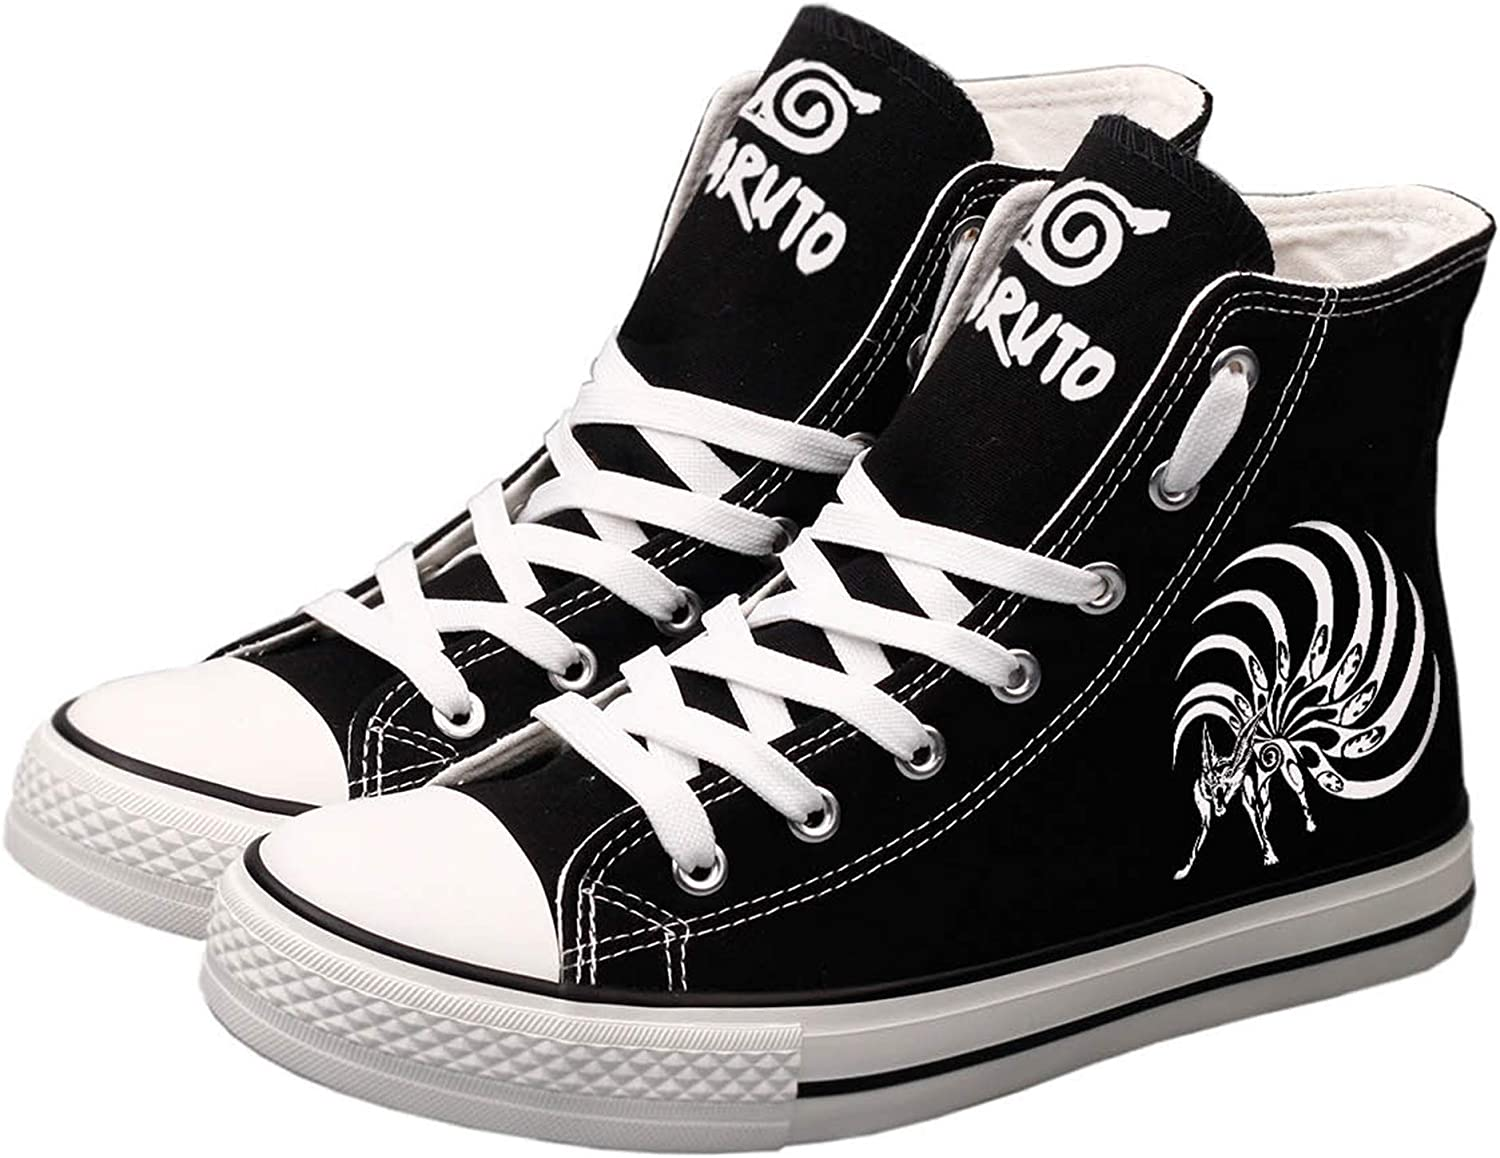 Amkoskr Fashion Naruto Canvas shoes Hand-Painted High Top Sneakers Casual Cosplay Sneakers Unisex Designs Women Men Black